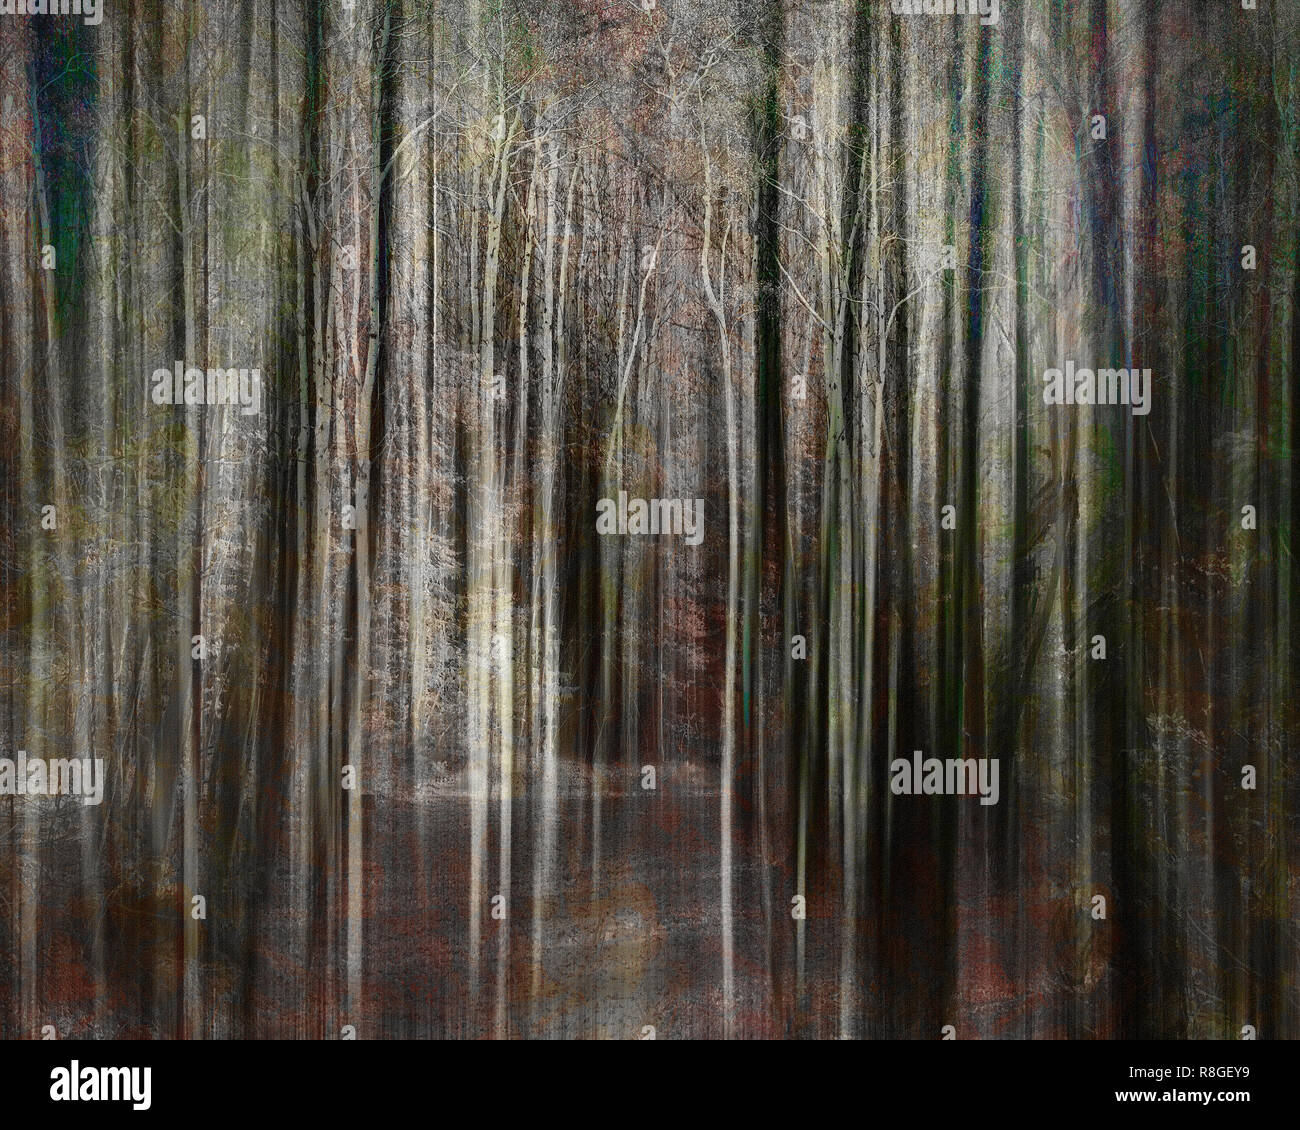 DIGITAL ART: The Darkness of a Forest - Stock Image